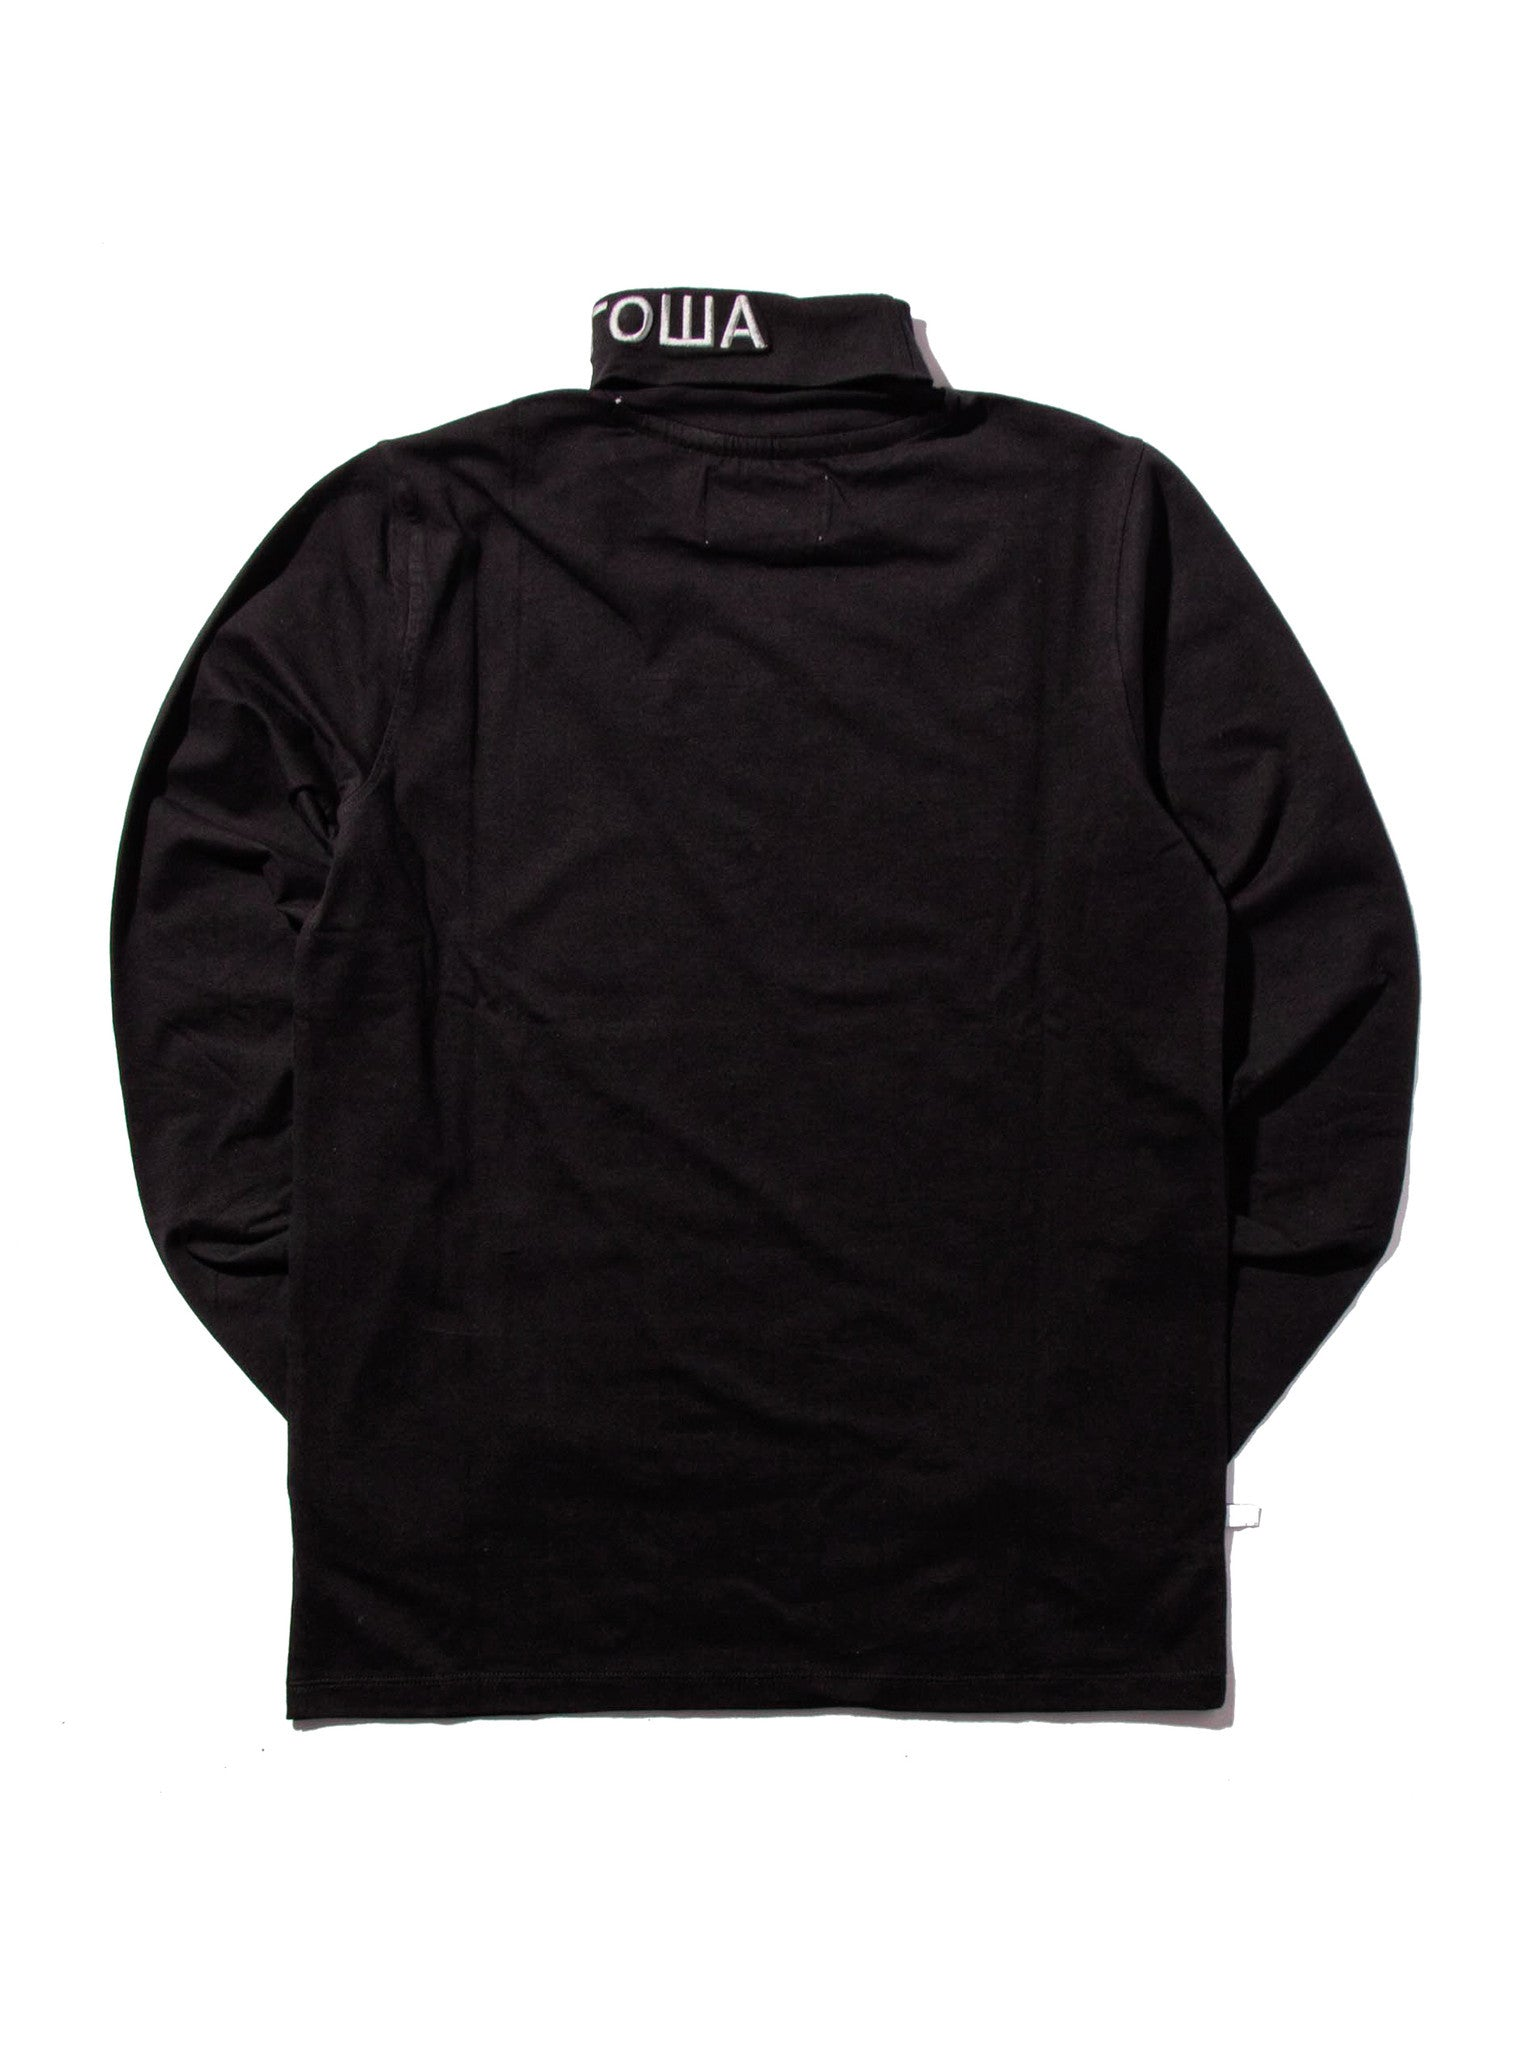 Red FIla Roll Neck T-Shirt 11